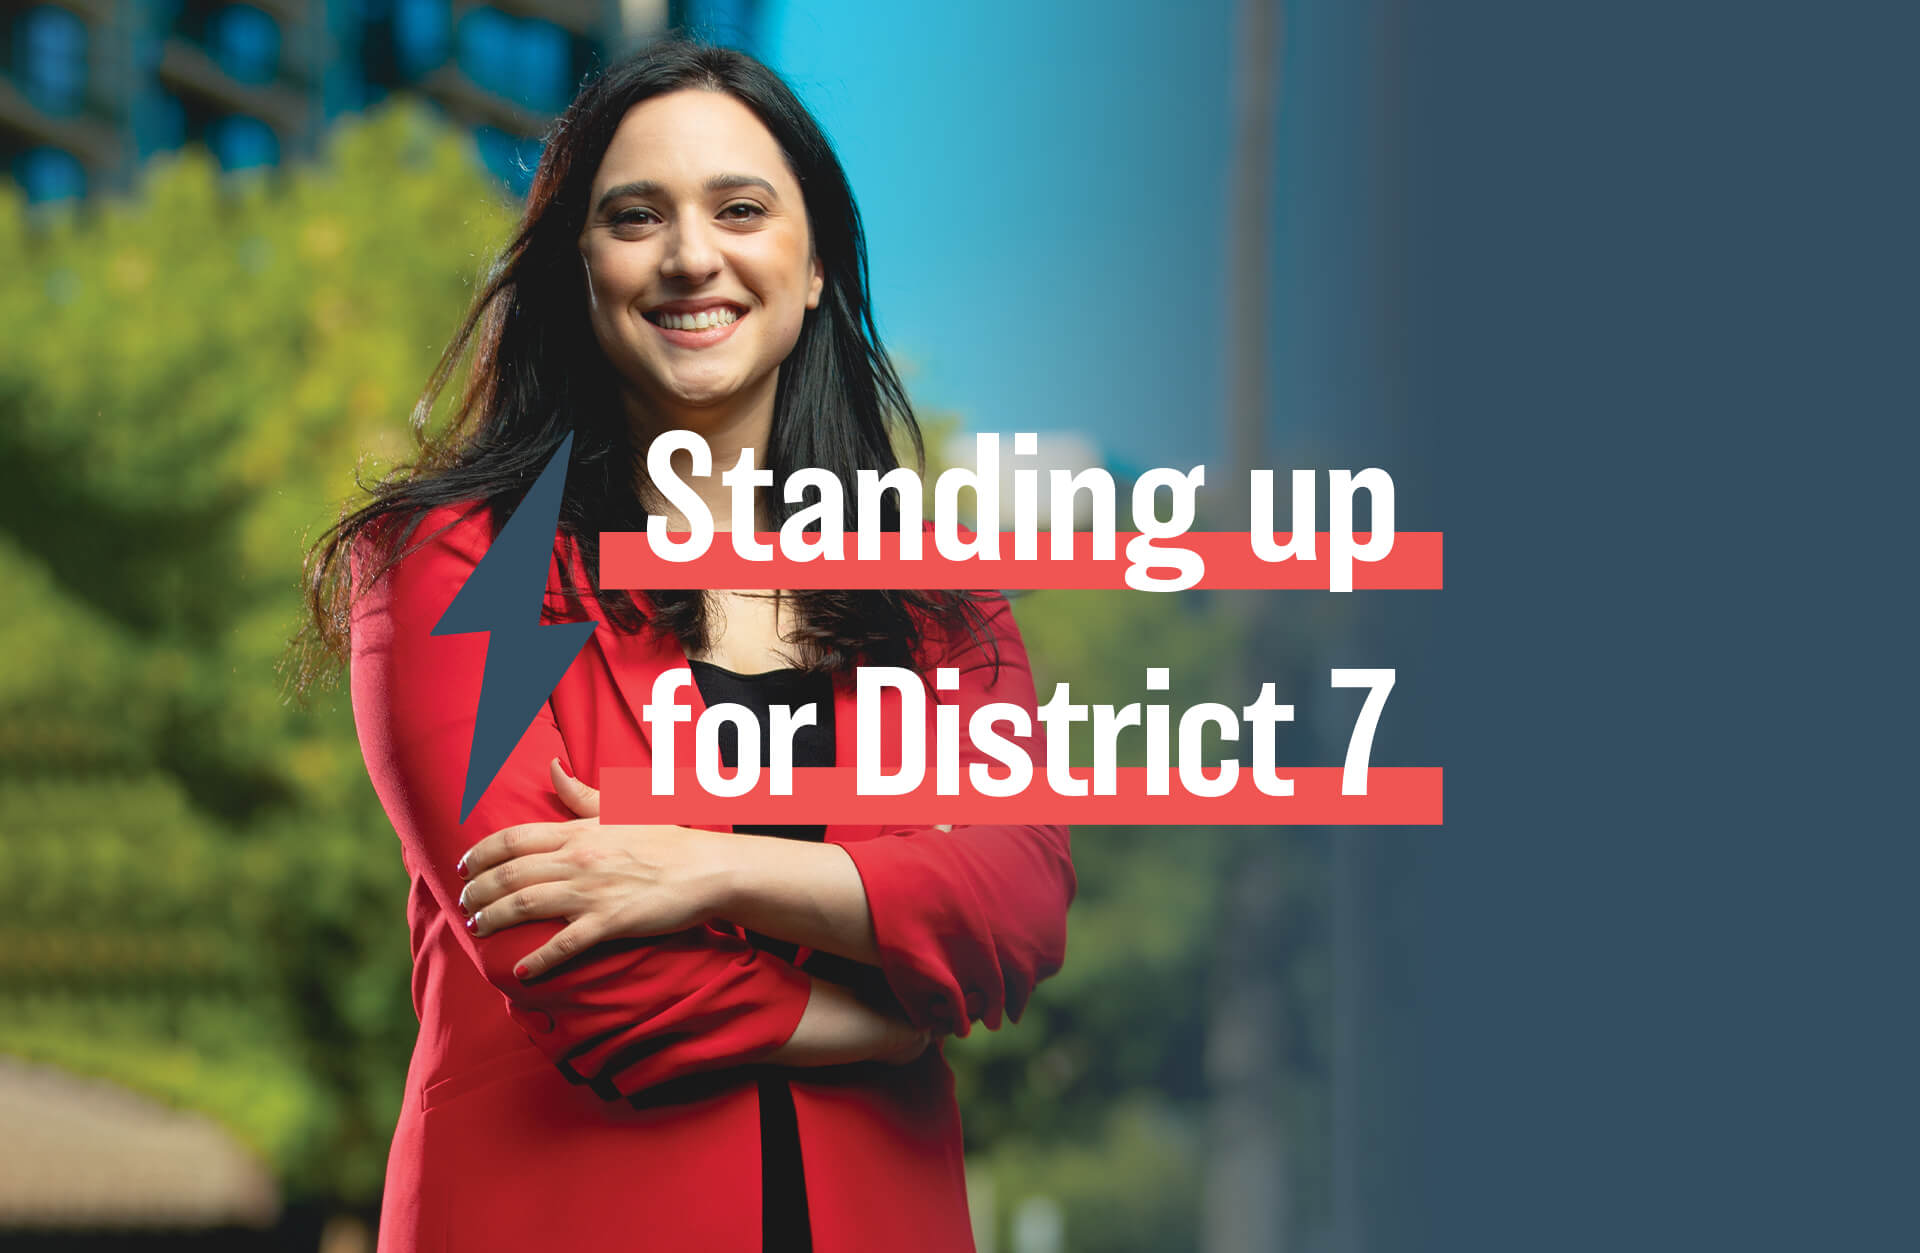 Yassamin Ansari for Phoenix City Council-Standing Up for District 7